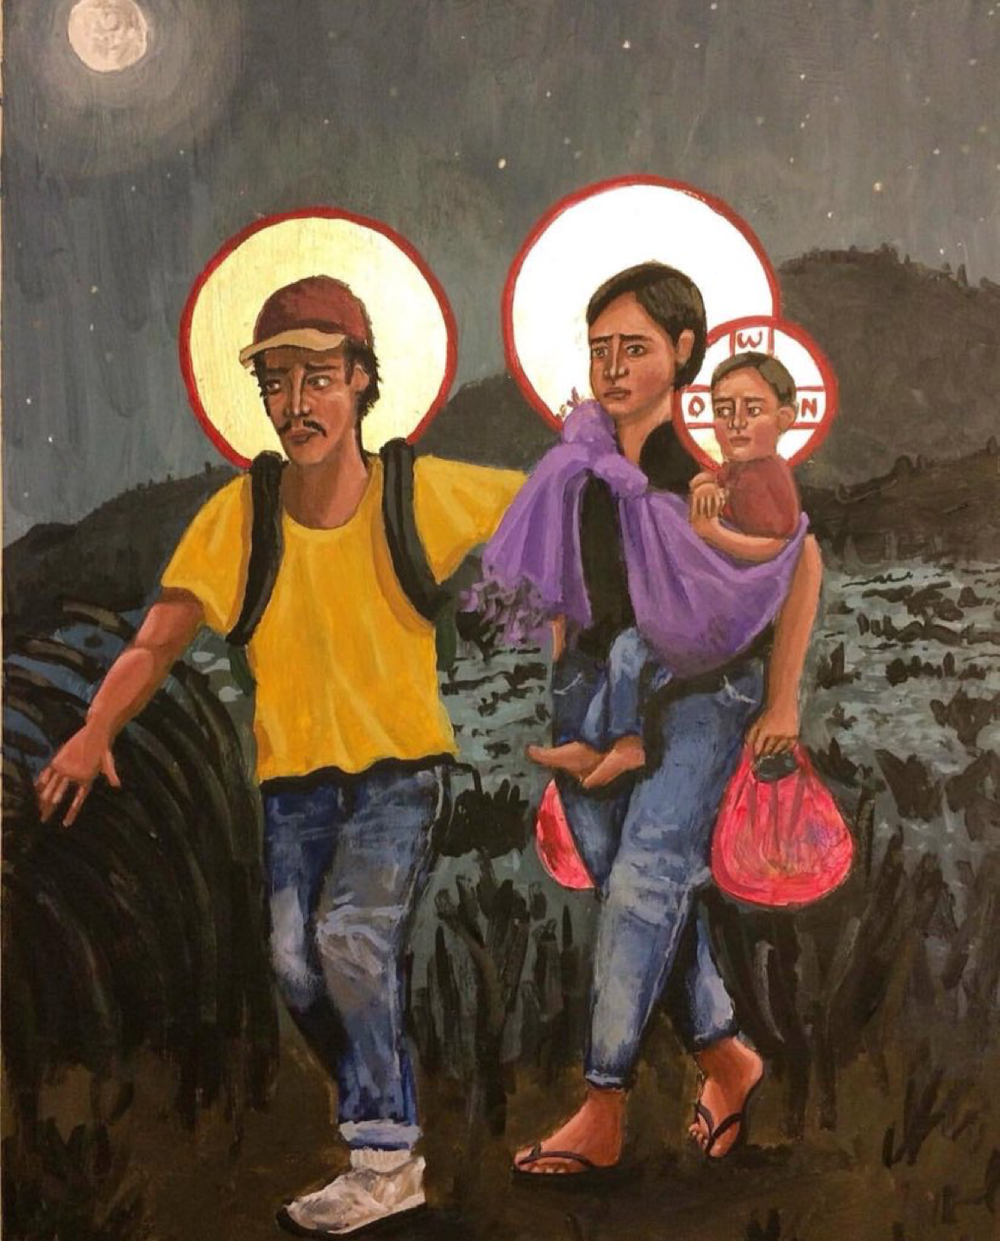 Refugees: La Sagrada Familia by Kelly Latimore (https://kellylatimoreicons.com)